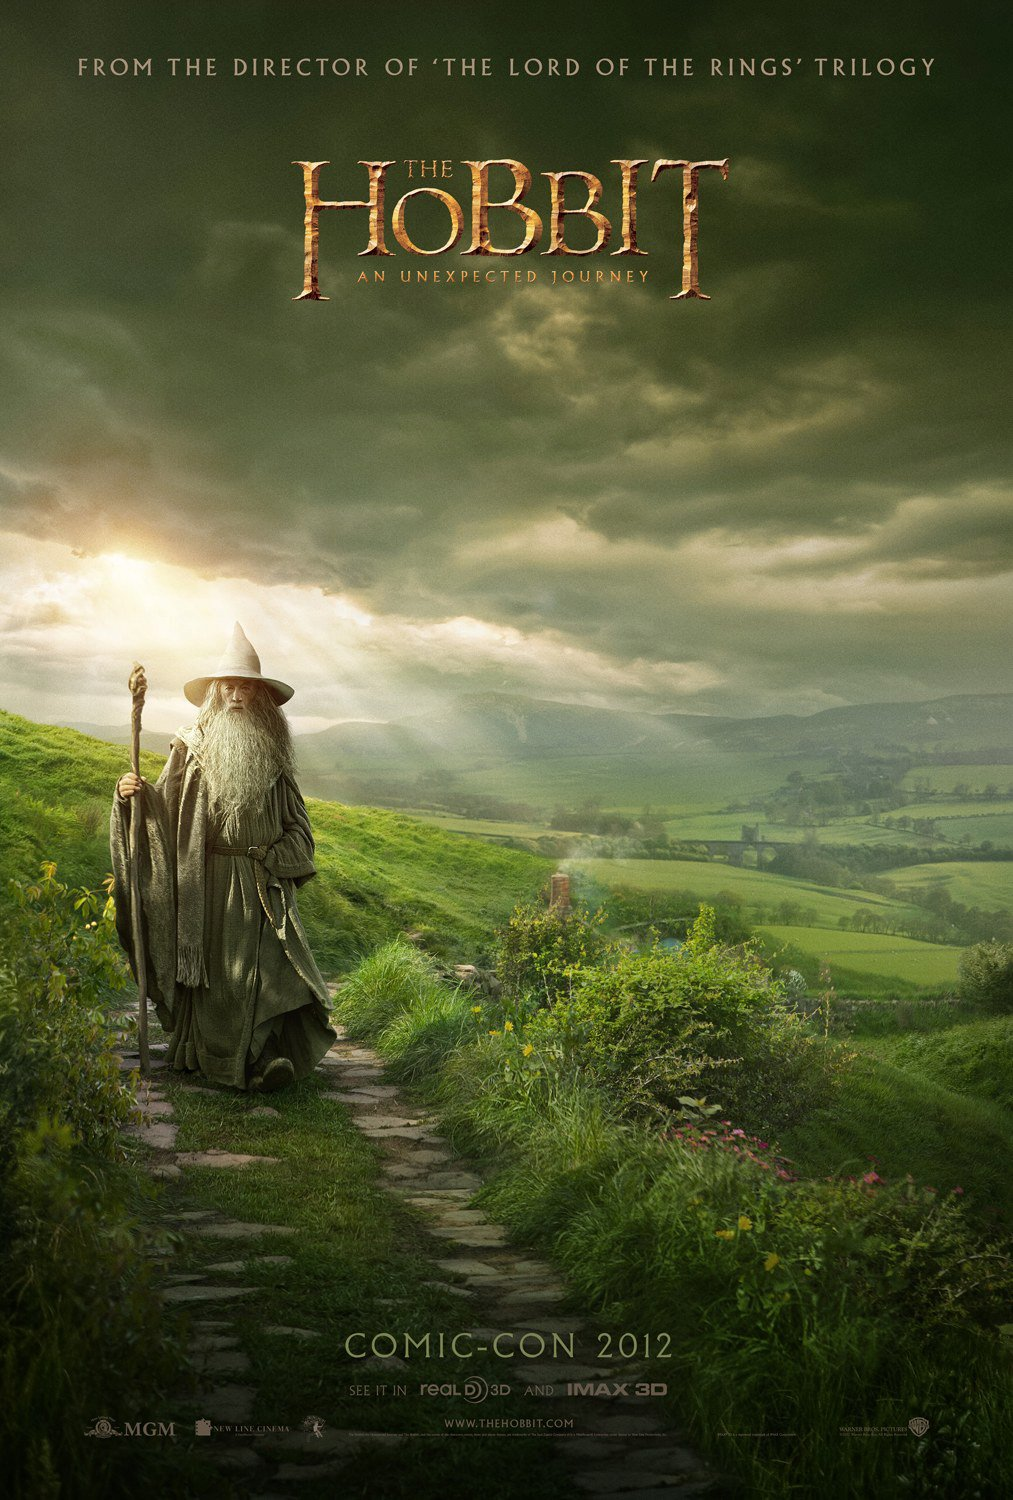 Peter Jackson revela un nuevo pster de El Hobbit en la Comic-Con